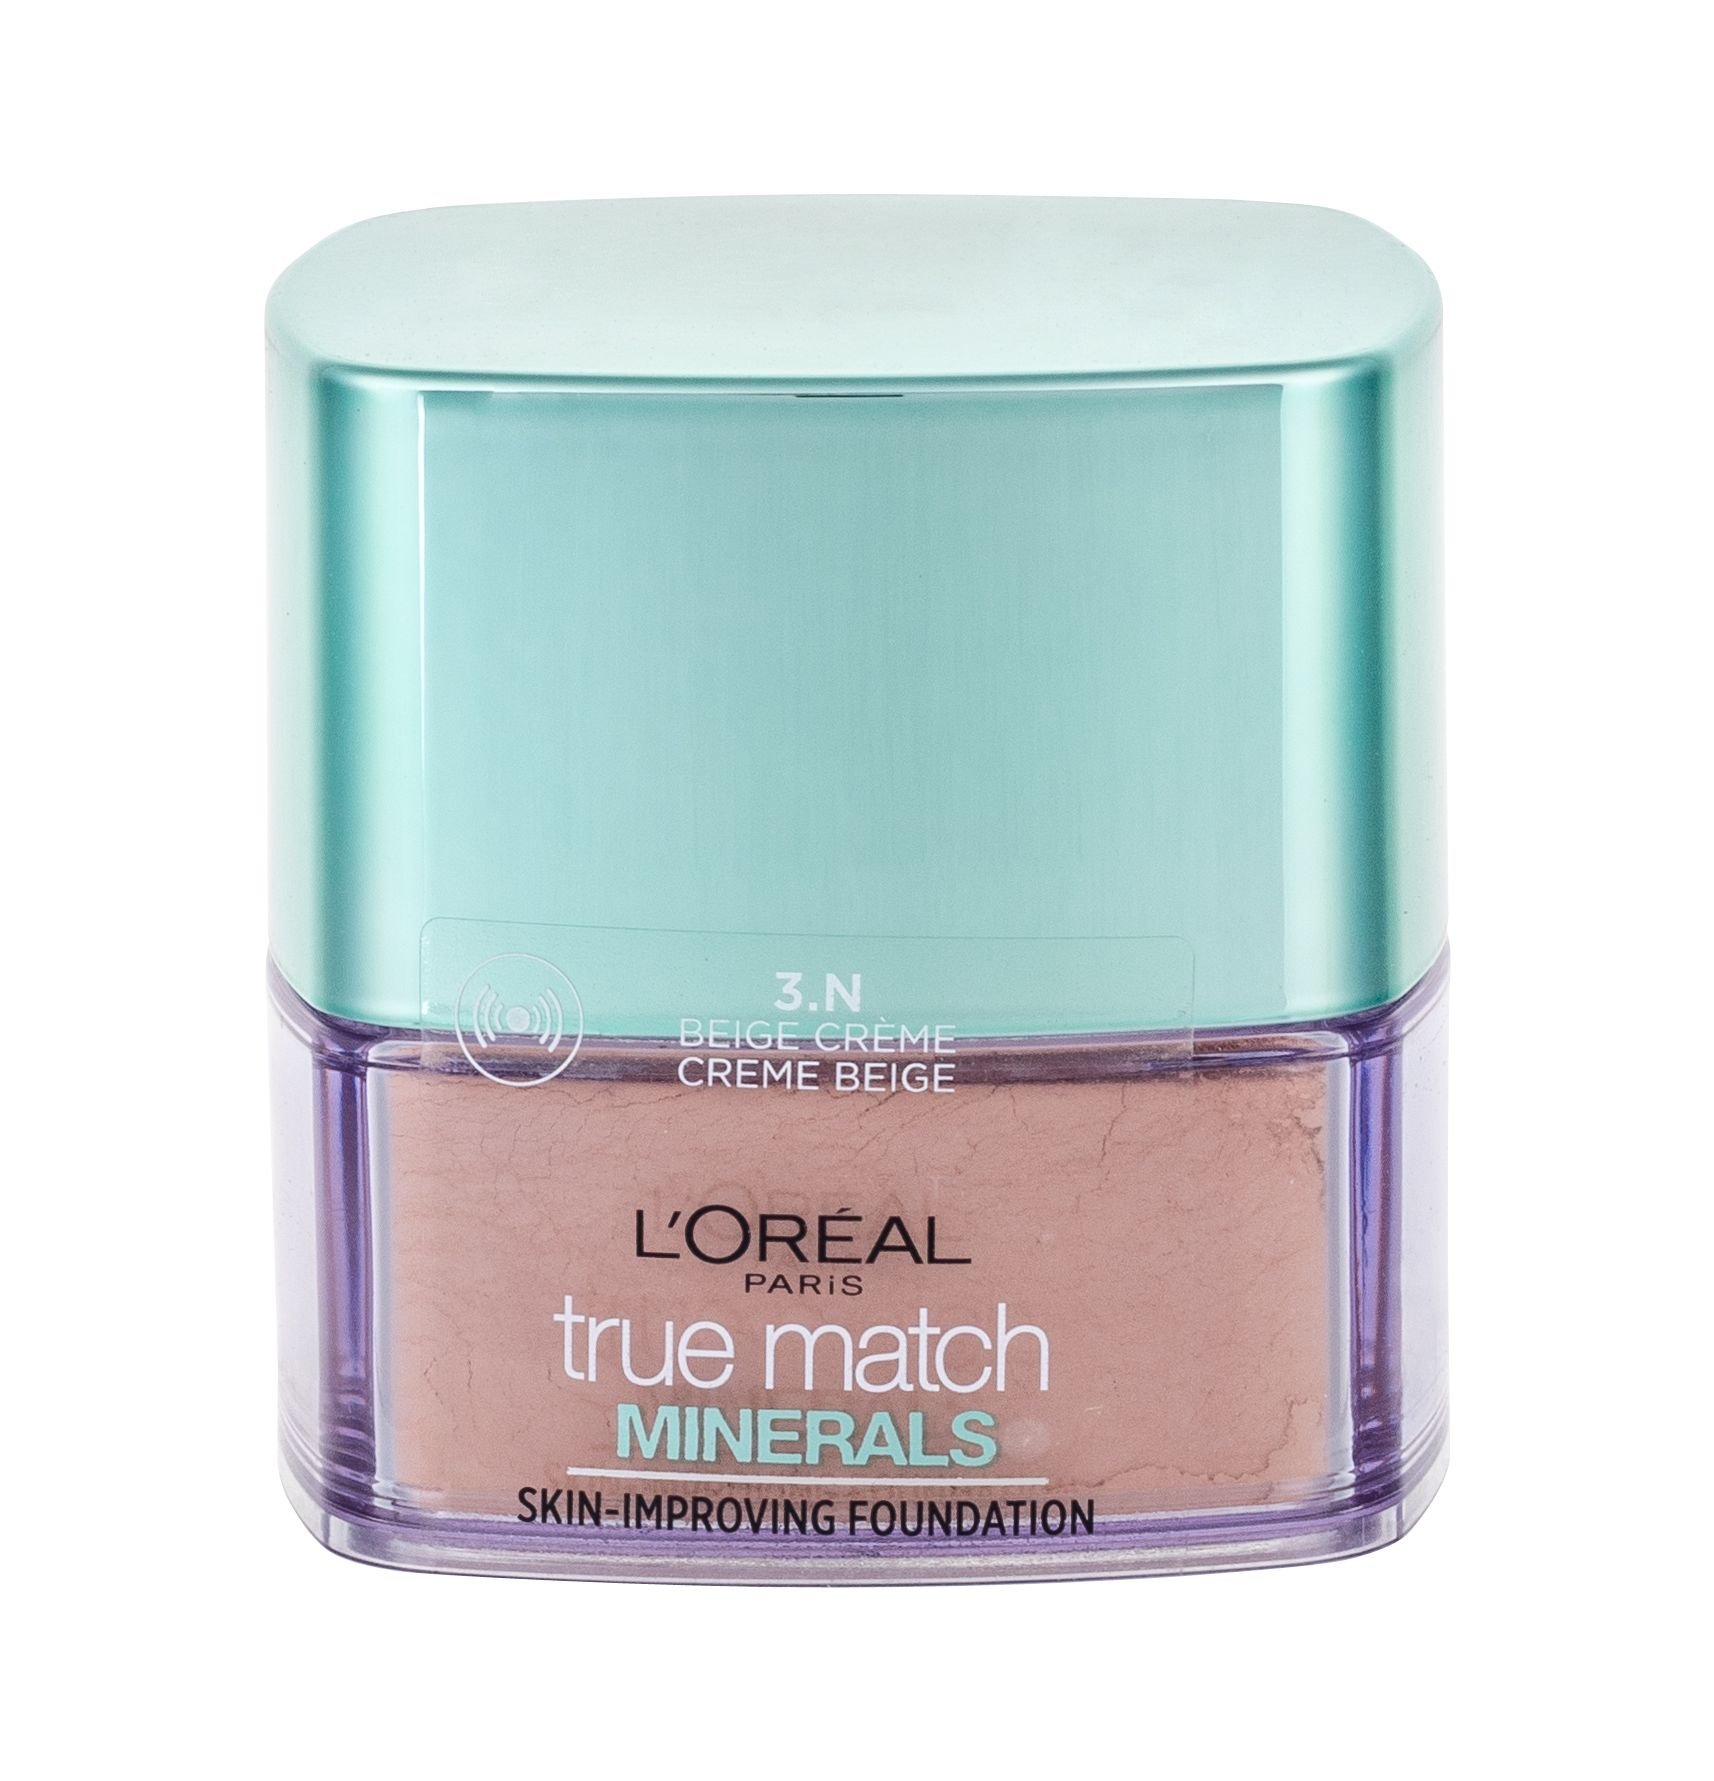 L´Oréal Paris True Match Cosmetic 10ml 3.N Creme Beige